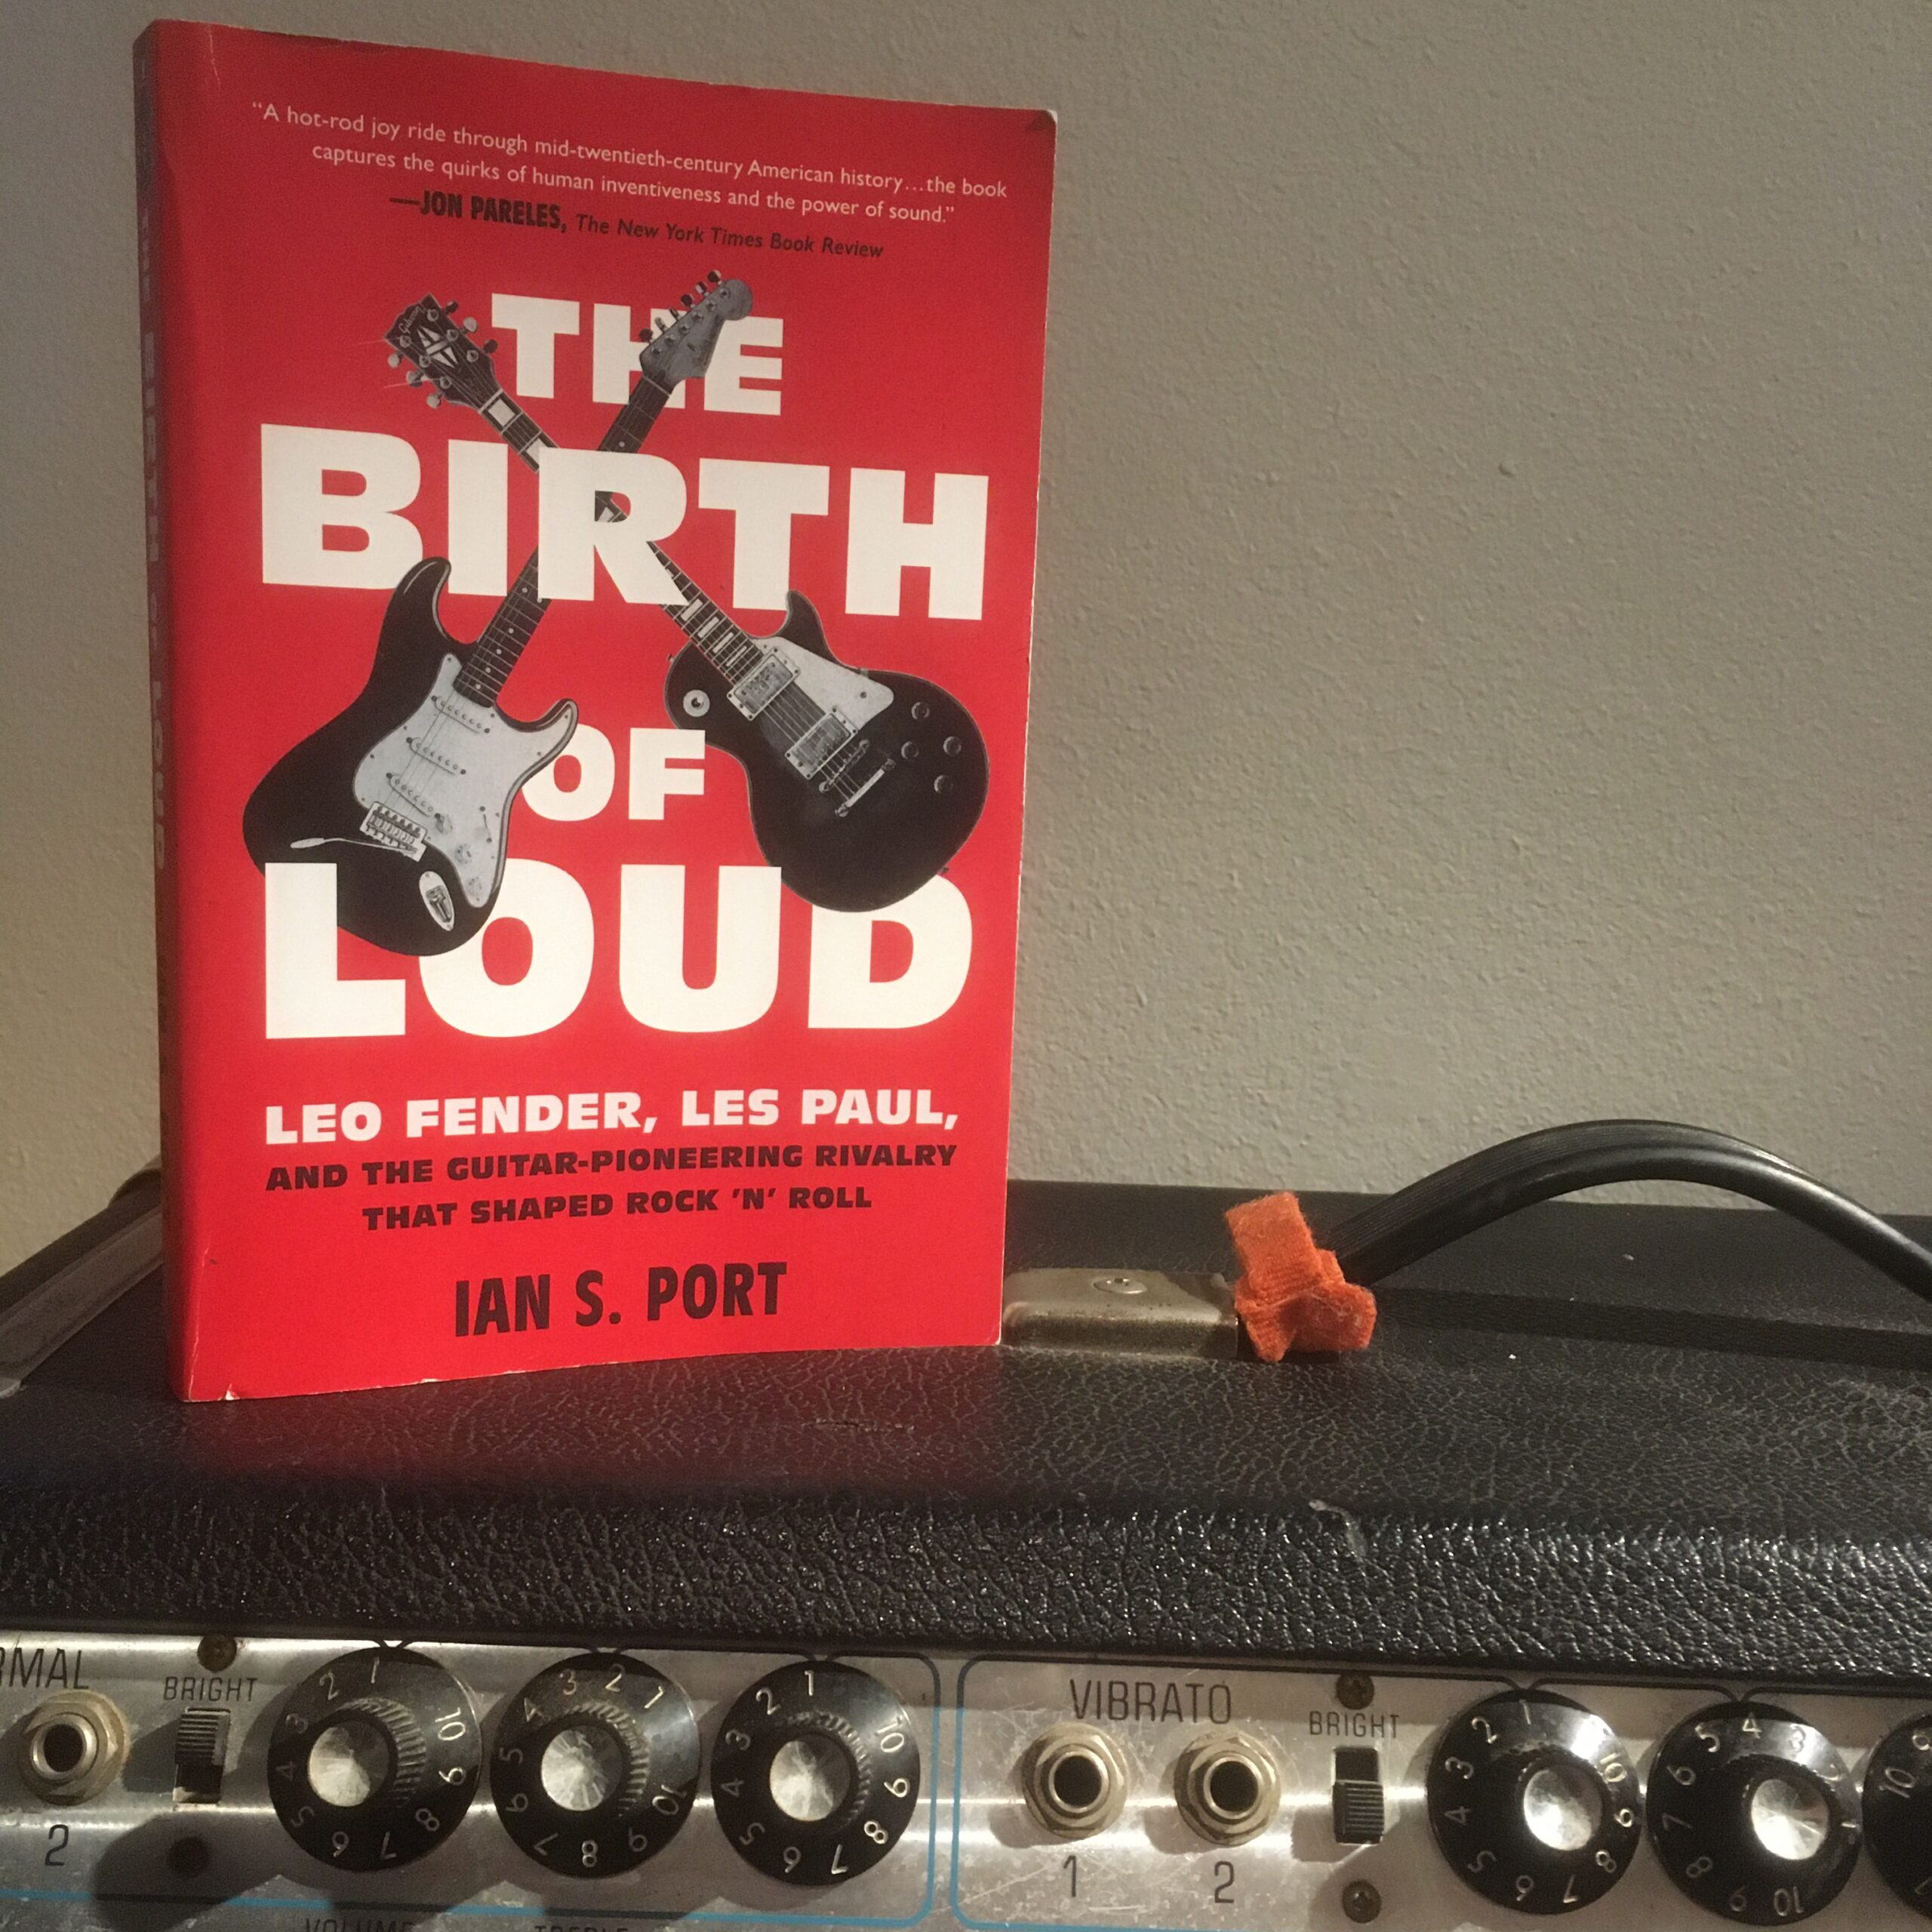 The Birth of Loud by Ian S. Sport: R&R gear history book goes to 11